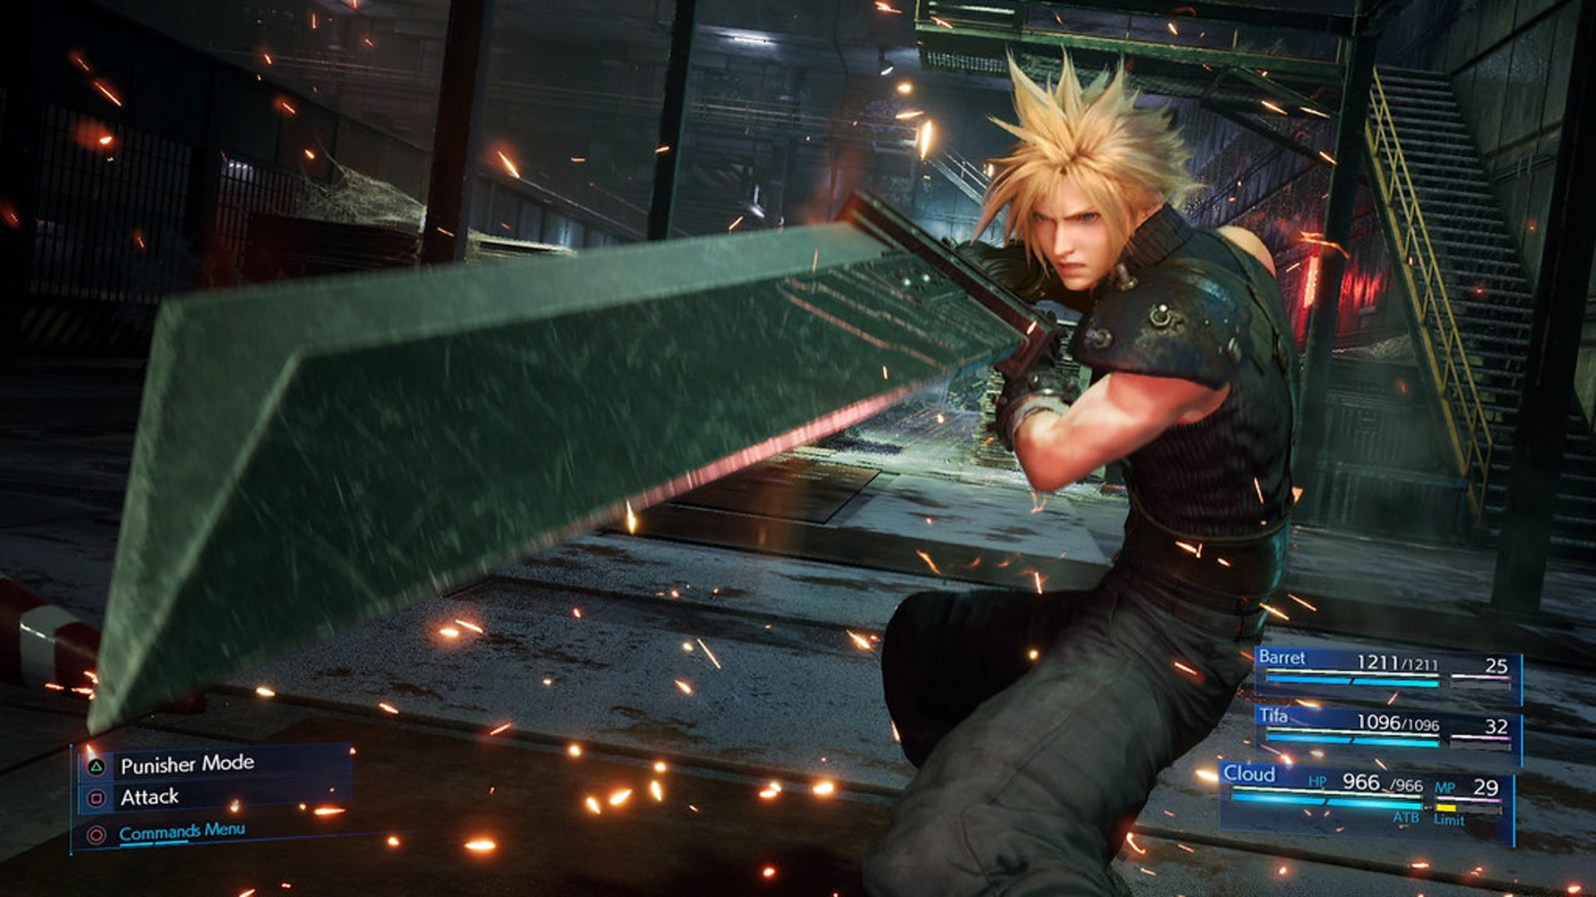 Quelle: Square Enix - Final Fantasy 7 Remake - Kampfhaltung